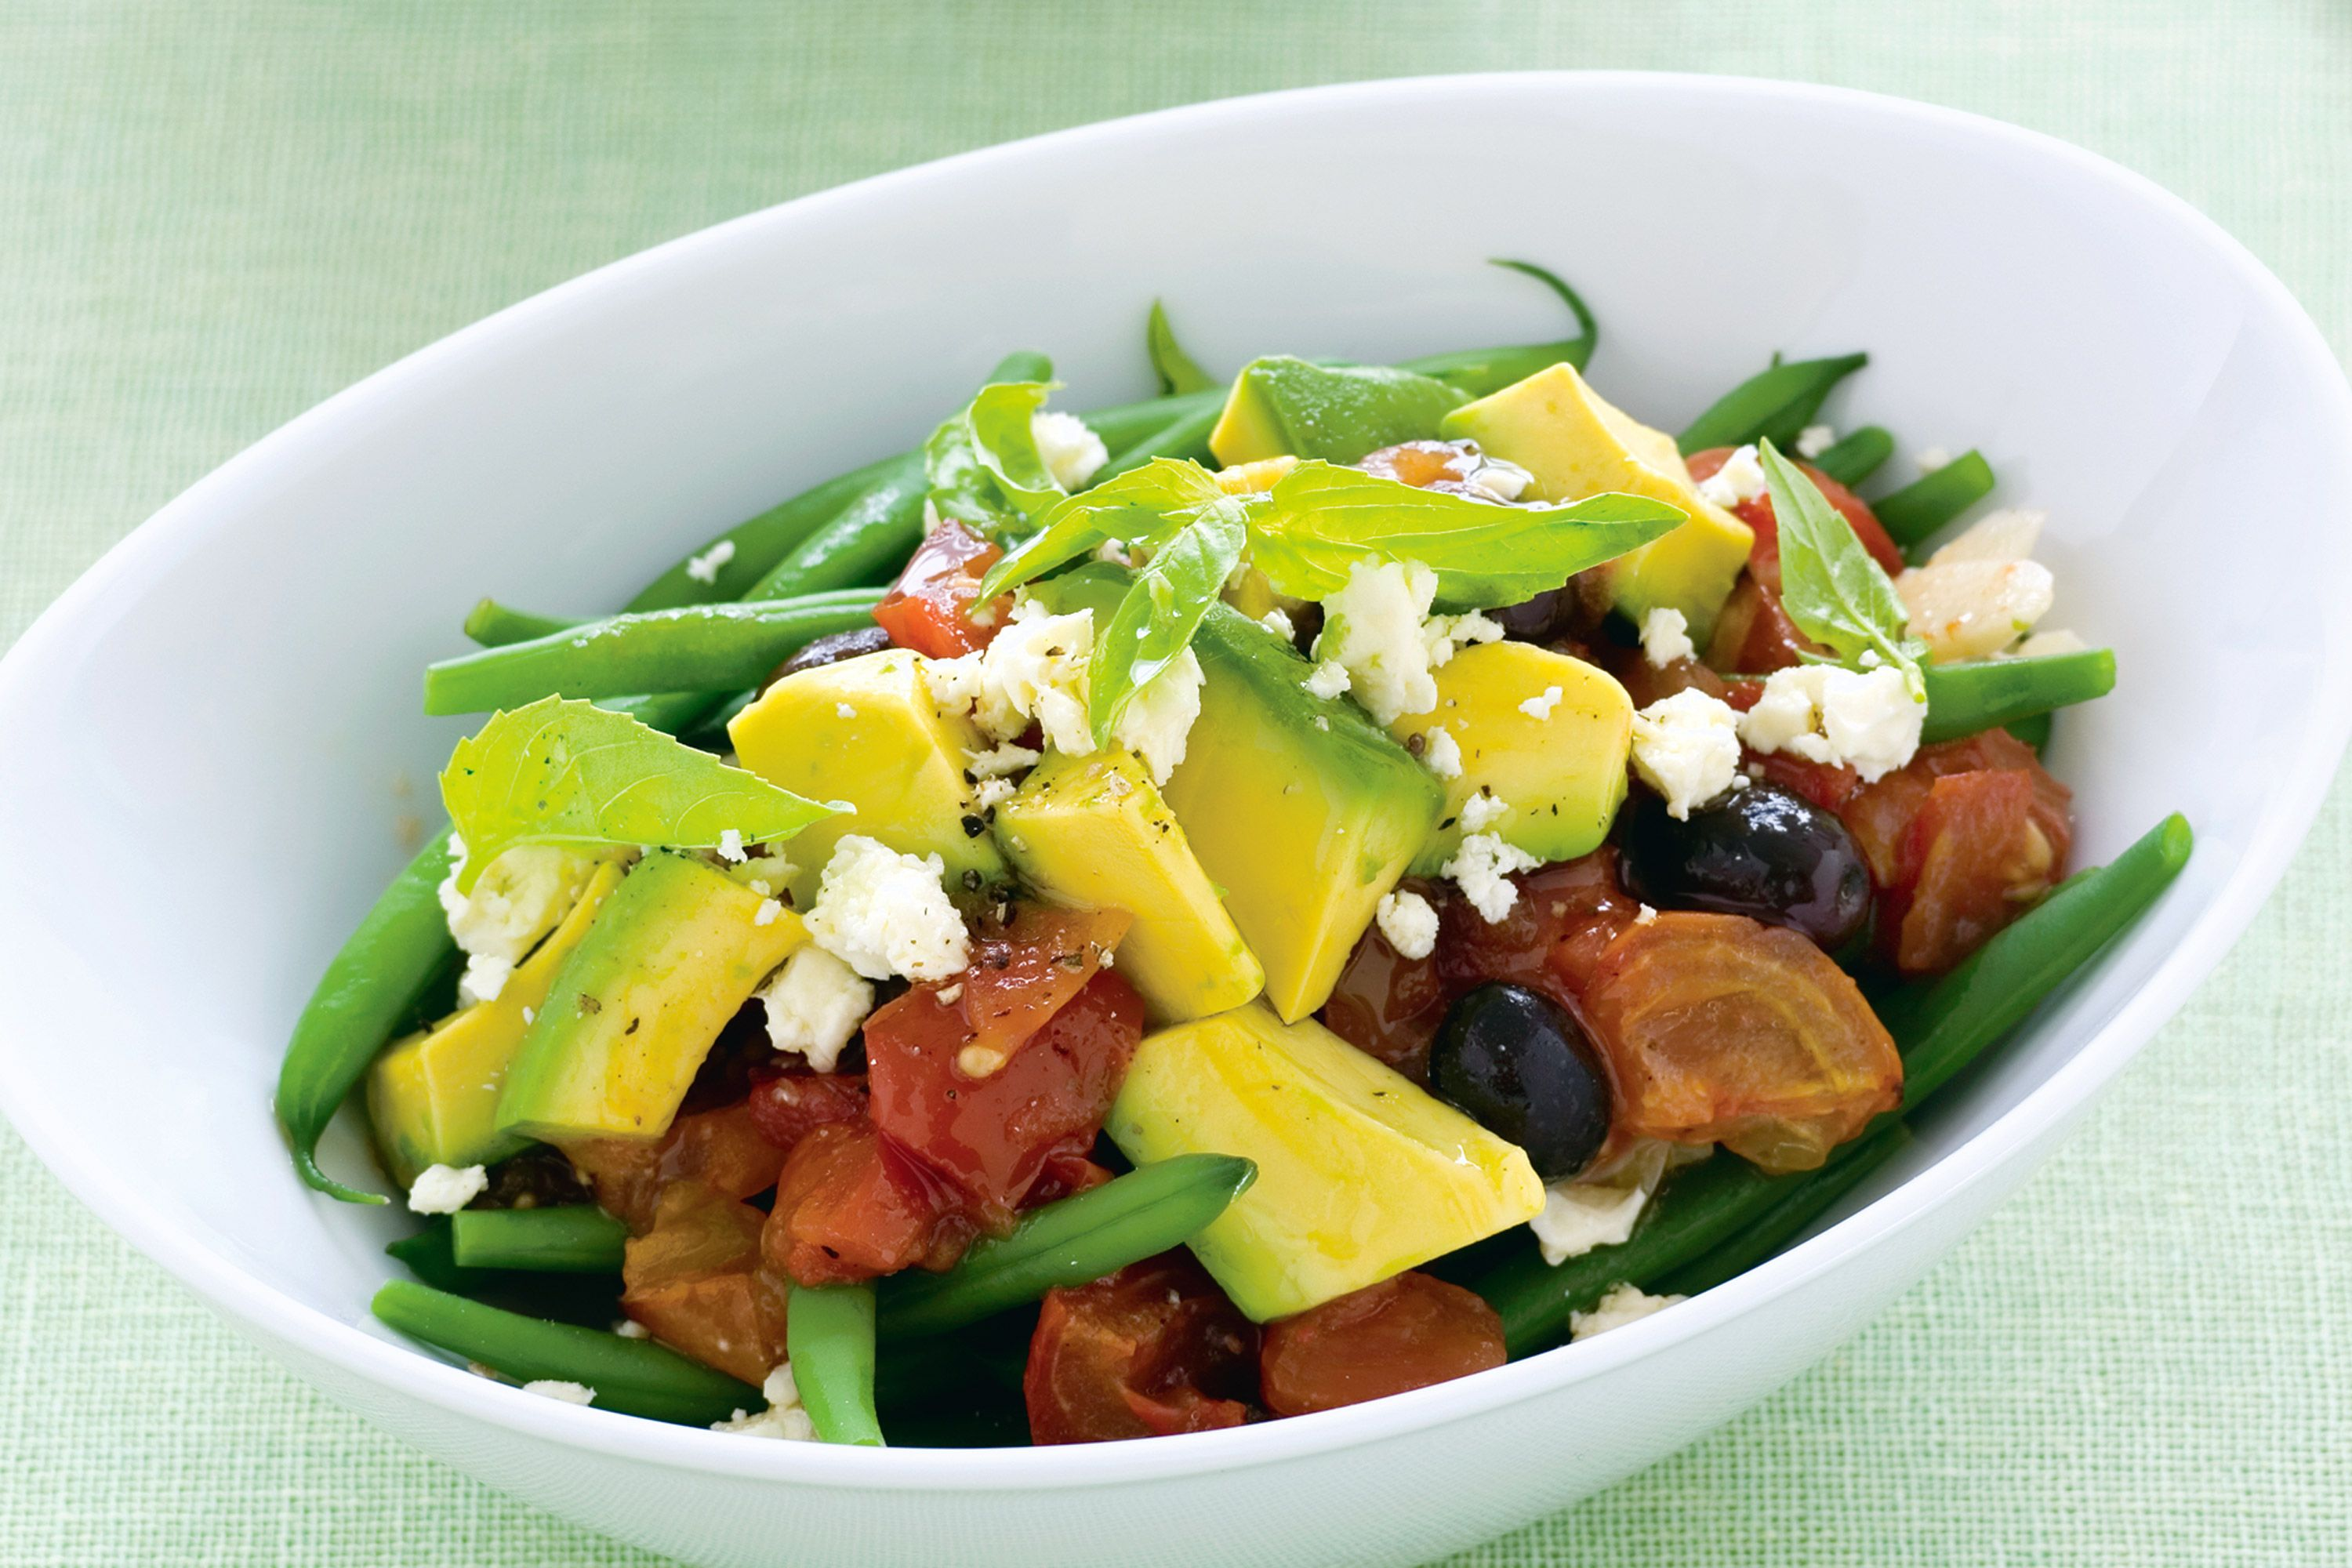 Here's a salad bursting with Spring-fresh flavour thanks to avocado, olives and tomato.